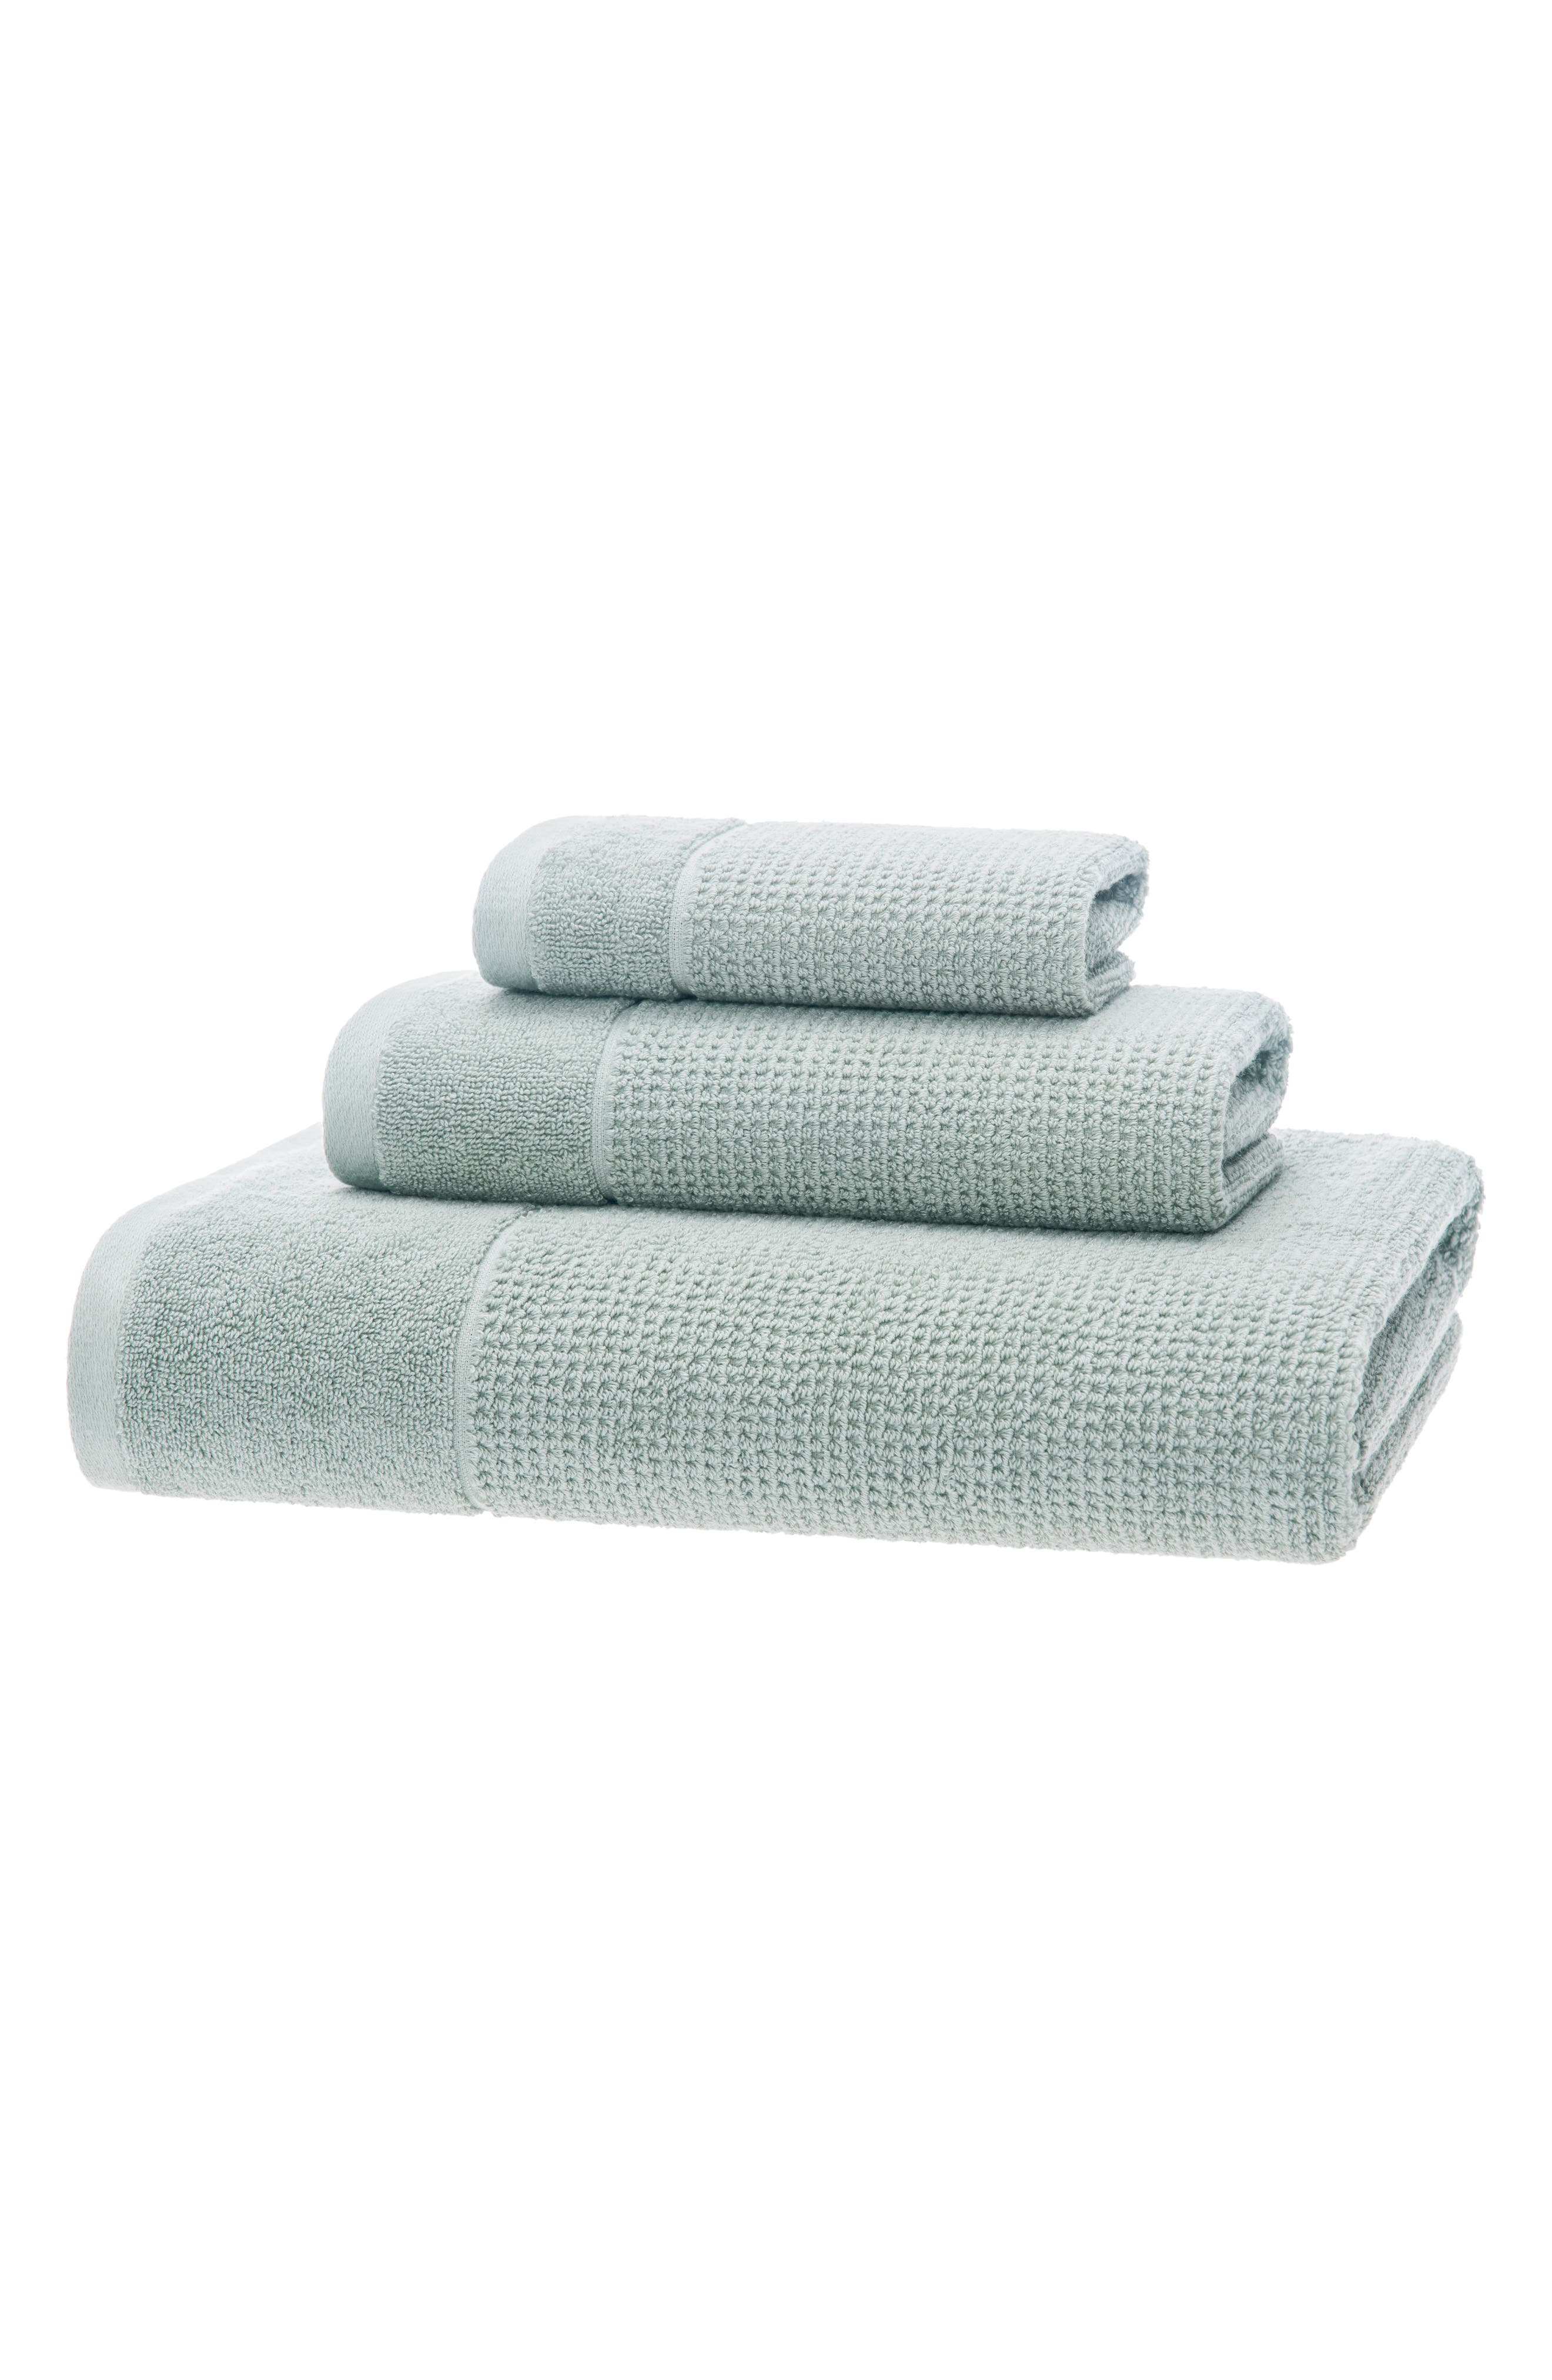 Wrap yourself in the comfort of premium Turkish cotton with this highly absorbent and exceptionally soft bath towel. Style Name: UGG Redondo Bath Towel. Style Number: 6070493. Available in stores.